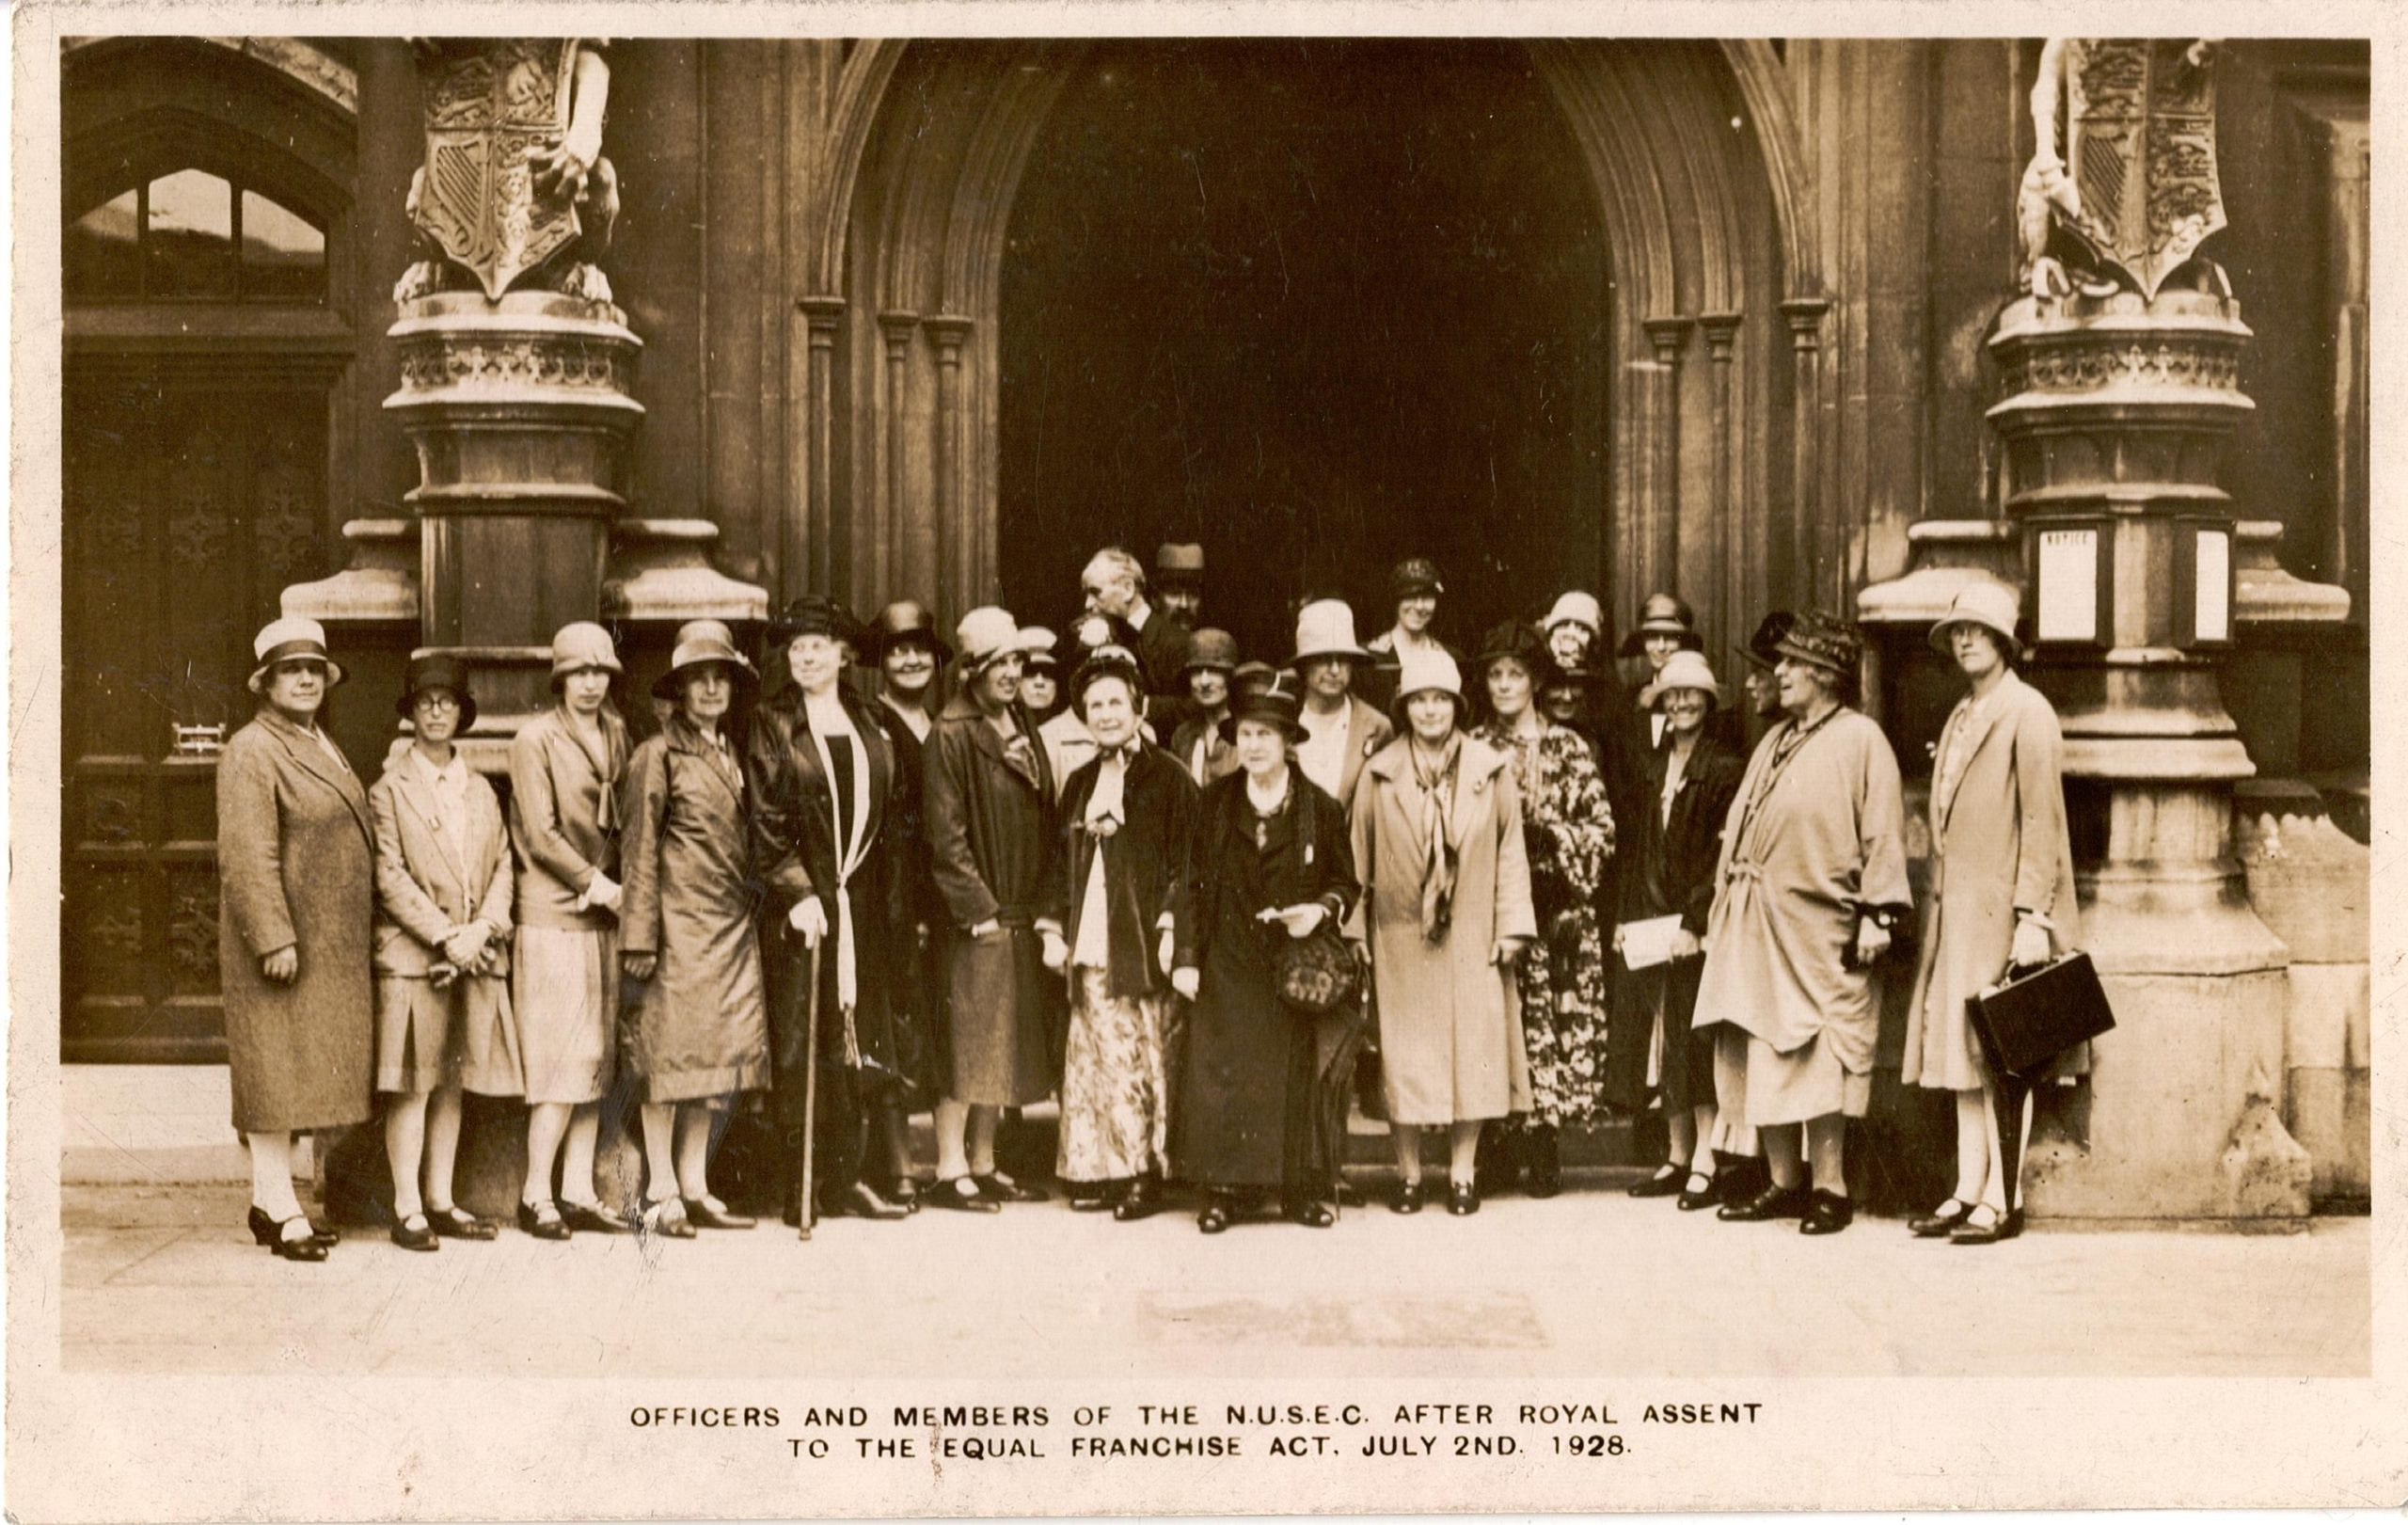 Officers and members of the National Union of Societies to Equal Citizenship after Royal Assent to the Equal Franchise Act on 2 July 1928.